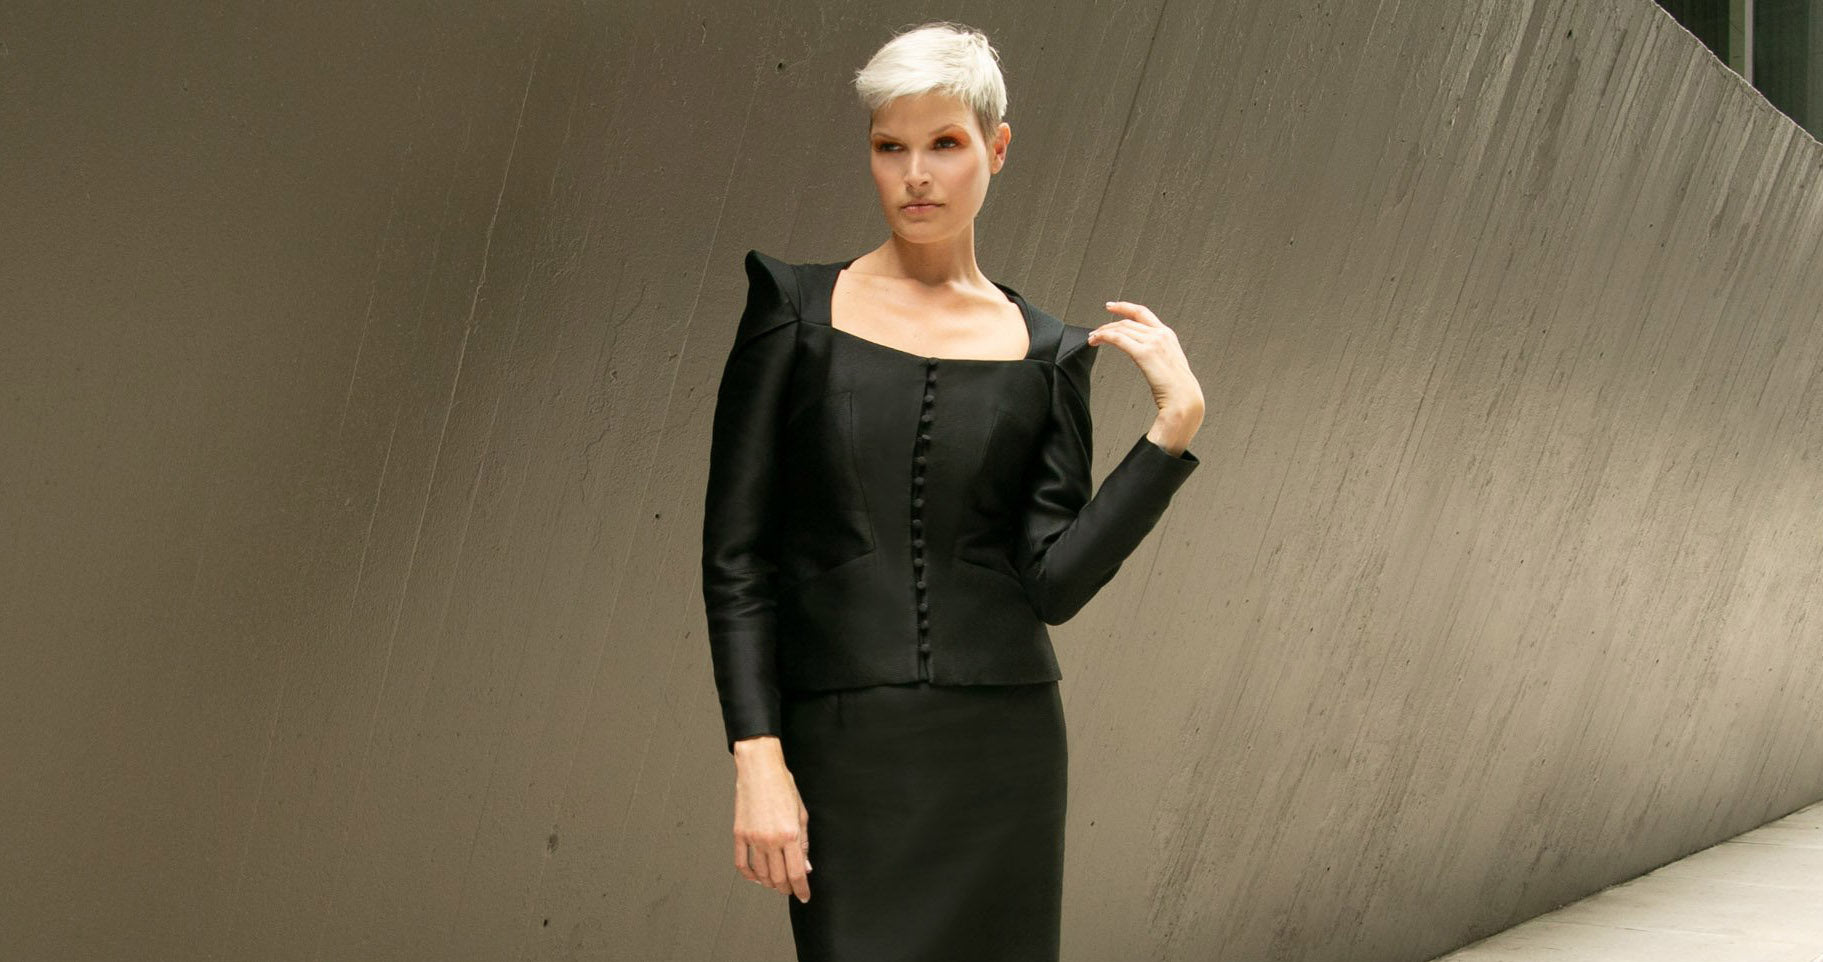 Model with short blond hair hearing black structured Jennifer Ritz jacket and fitted skirt.